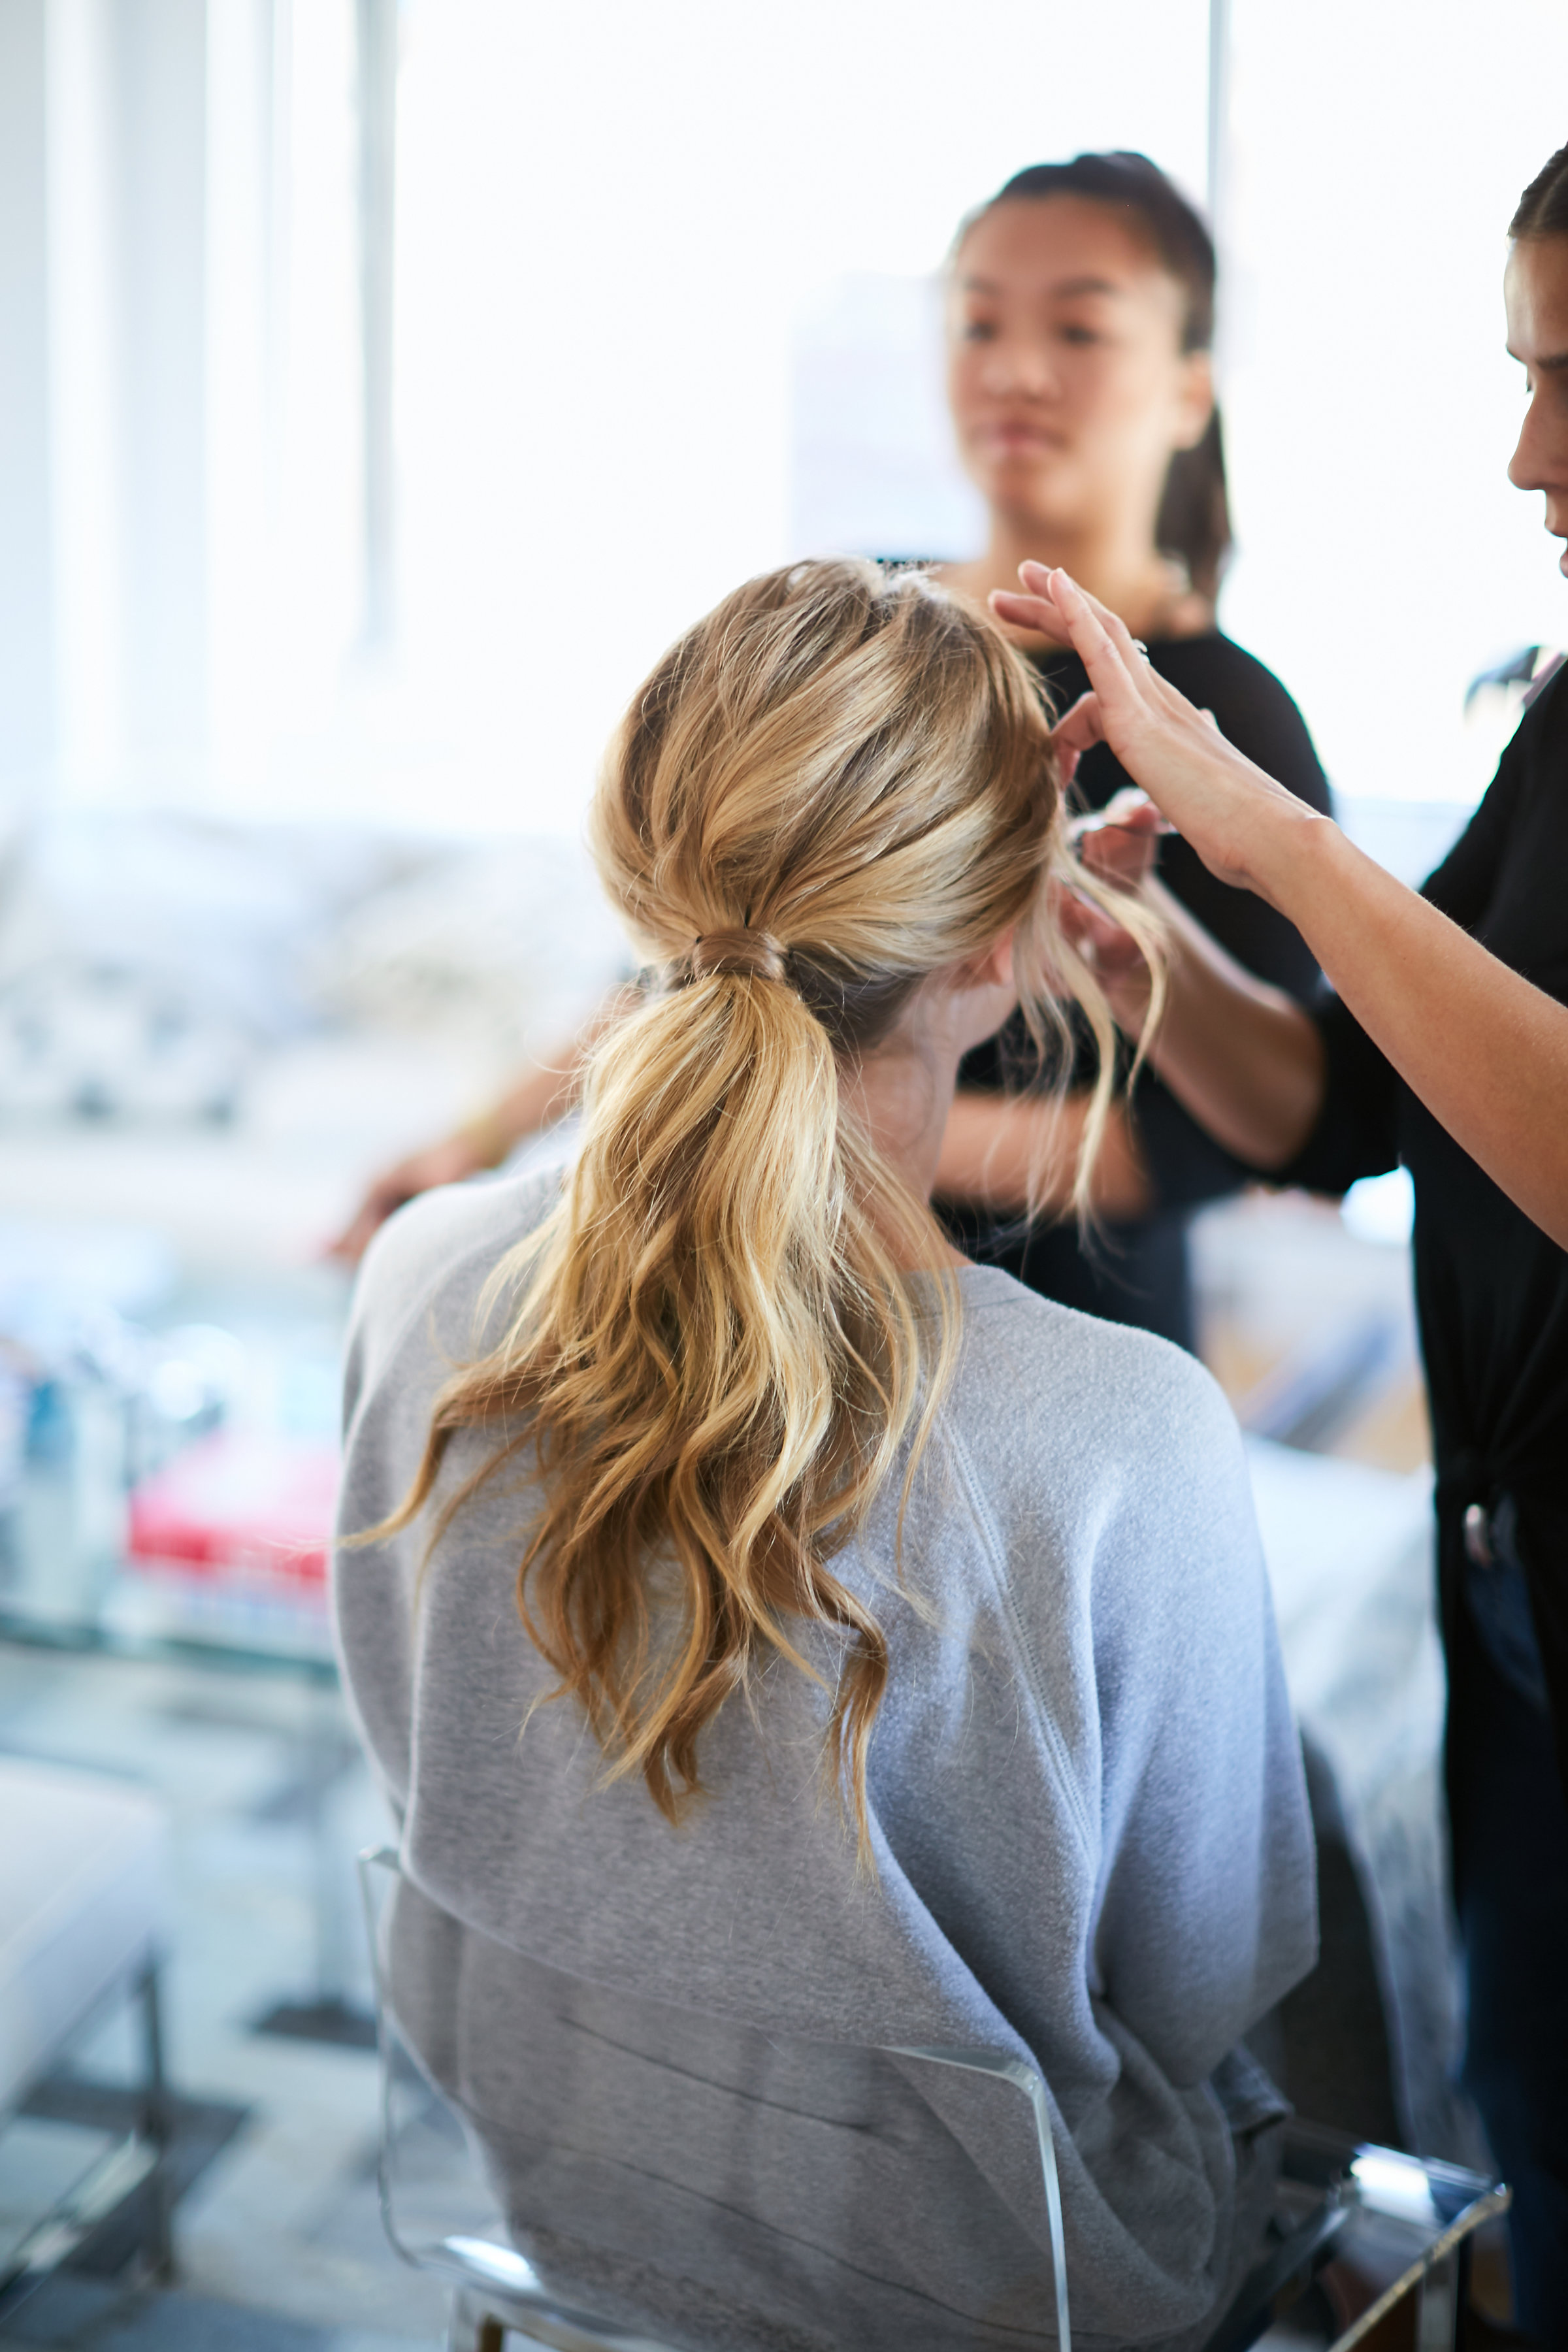 94c75d3c7555 This was my first NYFW, and I couldn't have been more thrilled to pair up  with GLAMSQUAD for all my looks! If you don't already know GLAMSQUAD is an  ...